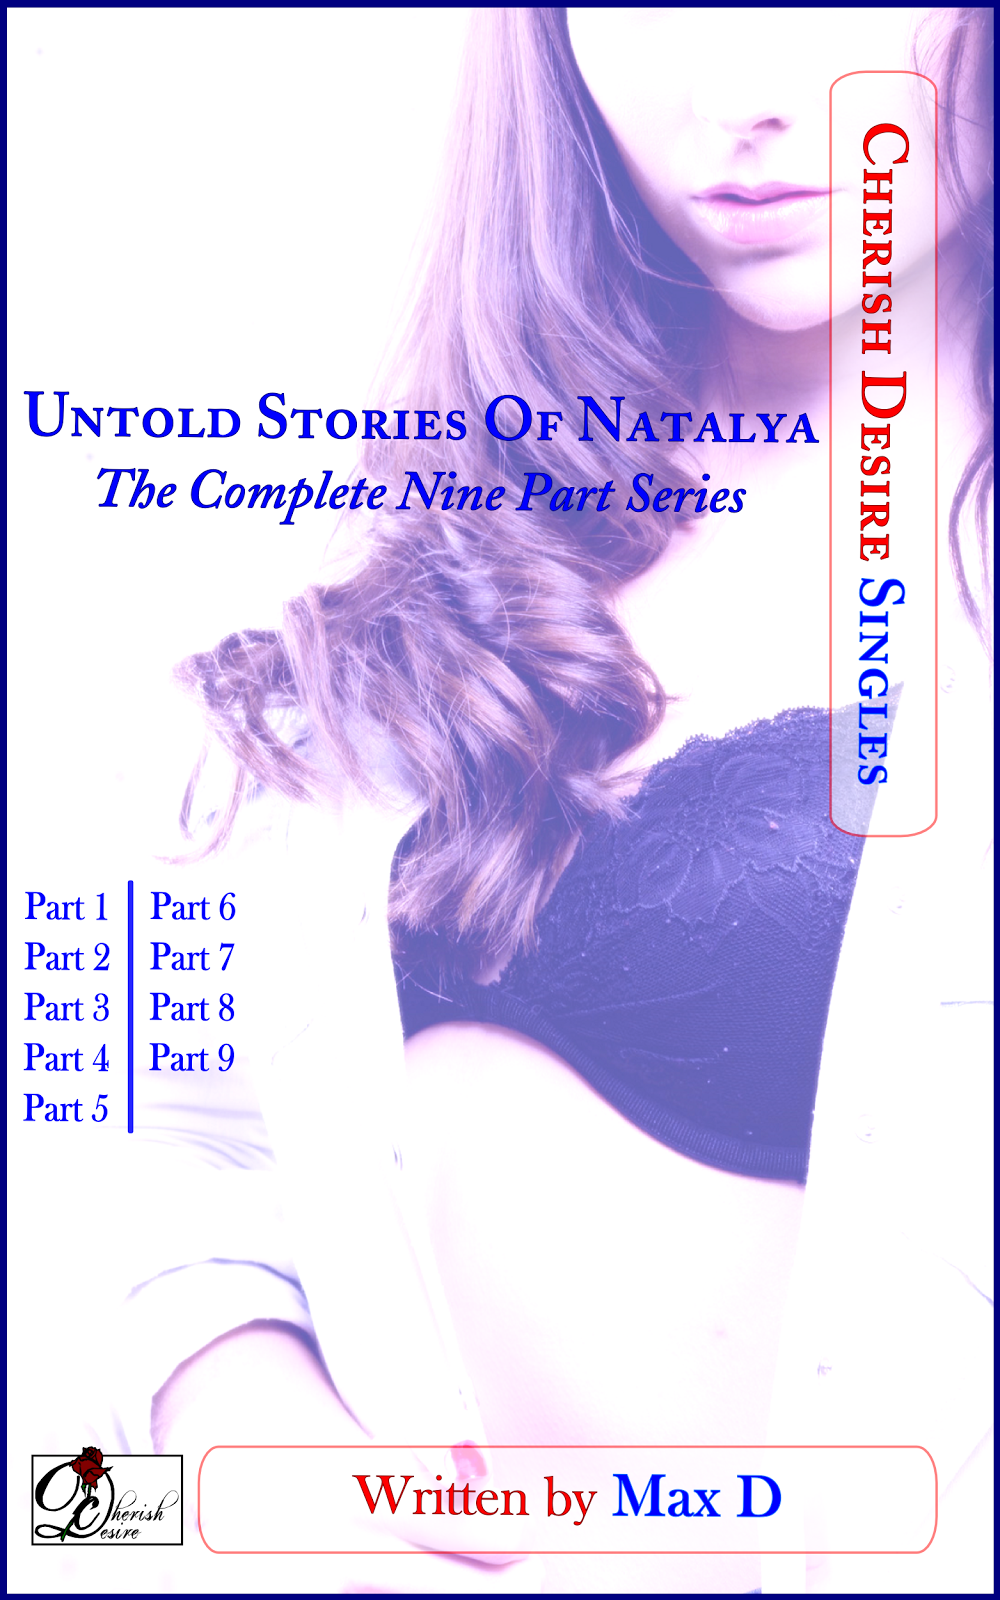 Cherish Desire Singles: Untold Stories Of Natalya (The Complete Nine Part Series), Max D, erotica